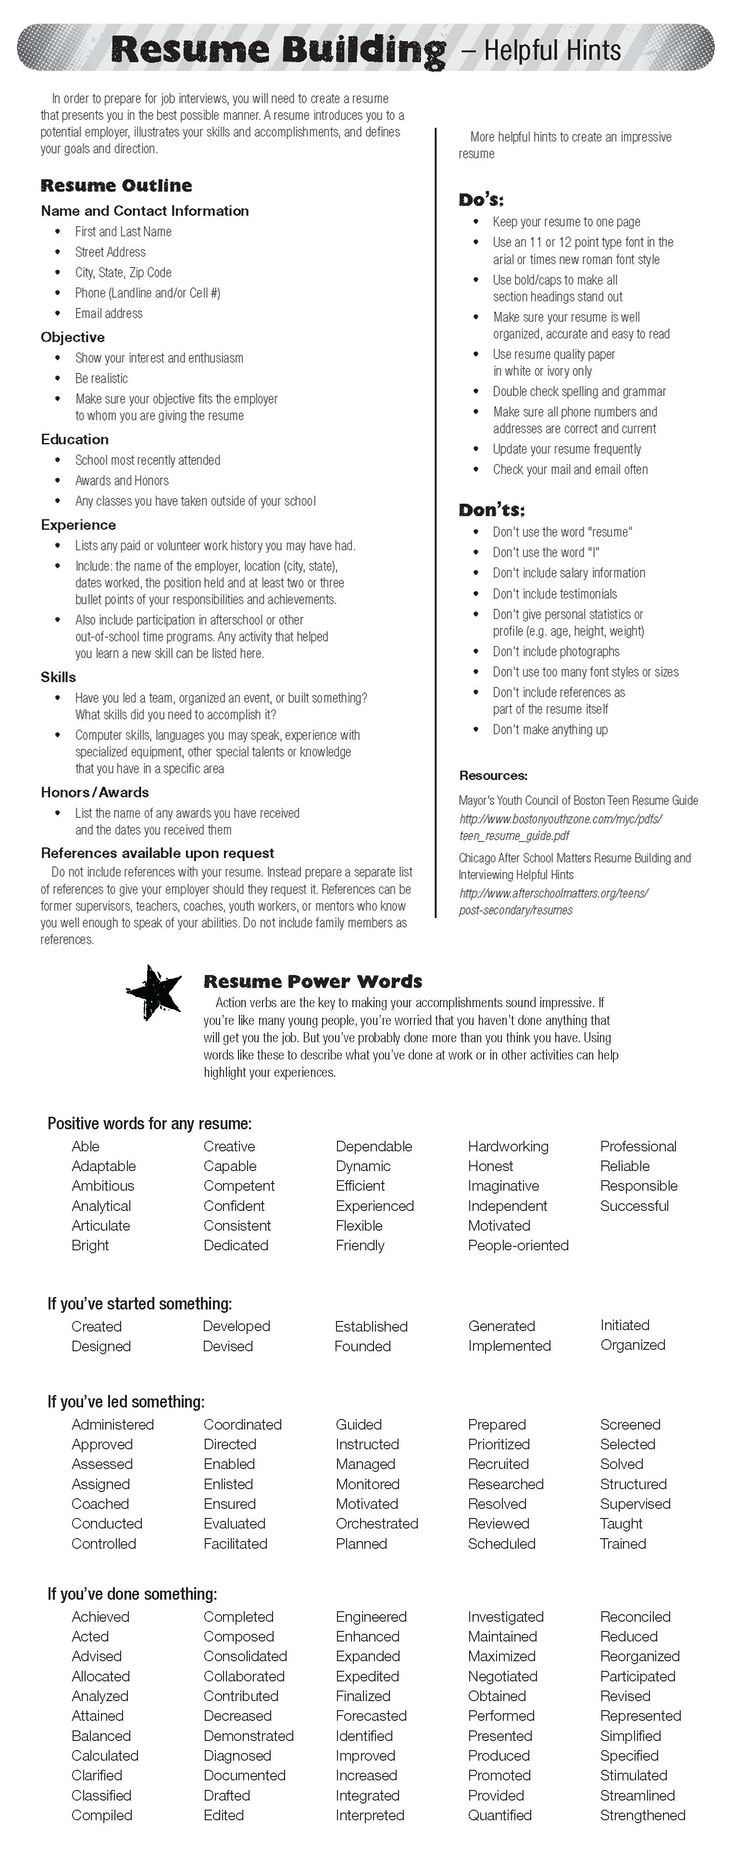 Picnictoimpeachus  Unique  Ideas About Resume On Pinterest  Cv Format Resume Cv And  With Licious  Ideas About Resume On Pinterest  Cv Format Resume Cv And Resume Templates With Captivating New Graduate Nurse Resume Examples Also New Nursing Graduate Resume In Addition Paralegal Resume Skills And Administrative Manager Resume As Well As Resume Professional Skills Additionally Where Can I Make A Resume For Free From Pinterestcom With Picnictoimpeachus  Licious  Ideas About Resume On Pinterest  Cv Format Resume Cv And  With Captivating  Ideas About Resume On Pinterest  Cv Format Resume Cv And Resume Templates And Unique New Graduate Nurse Resume Examples Also New Nursing Graduate Resume In Addition Paralegal Resume Skills From Pinterestcom